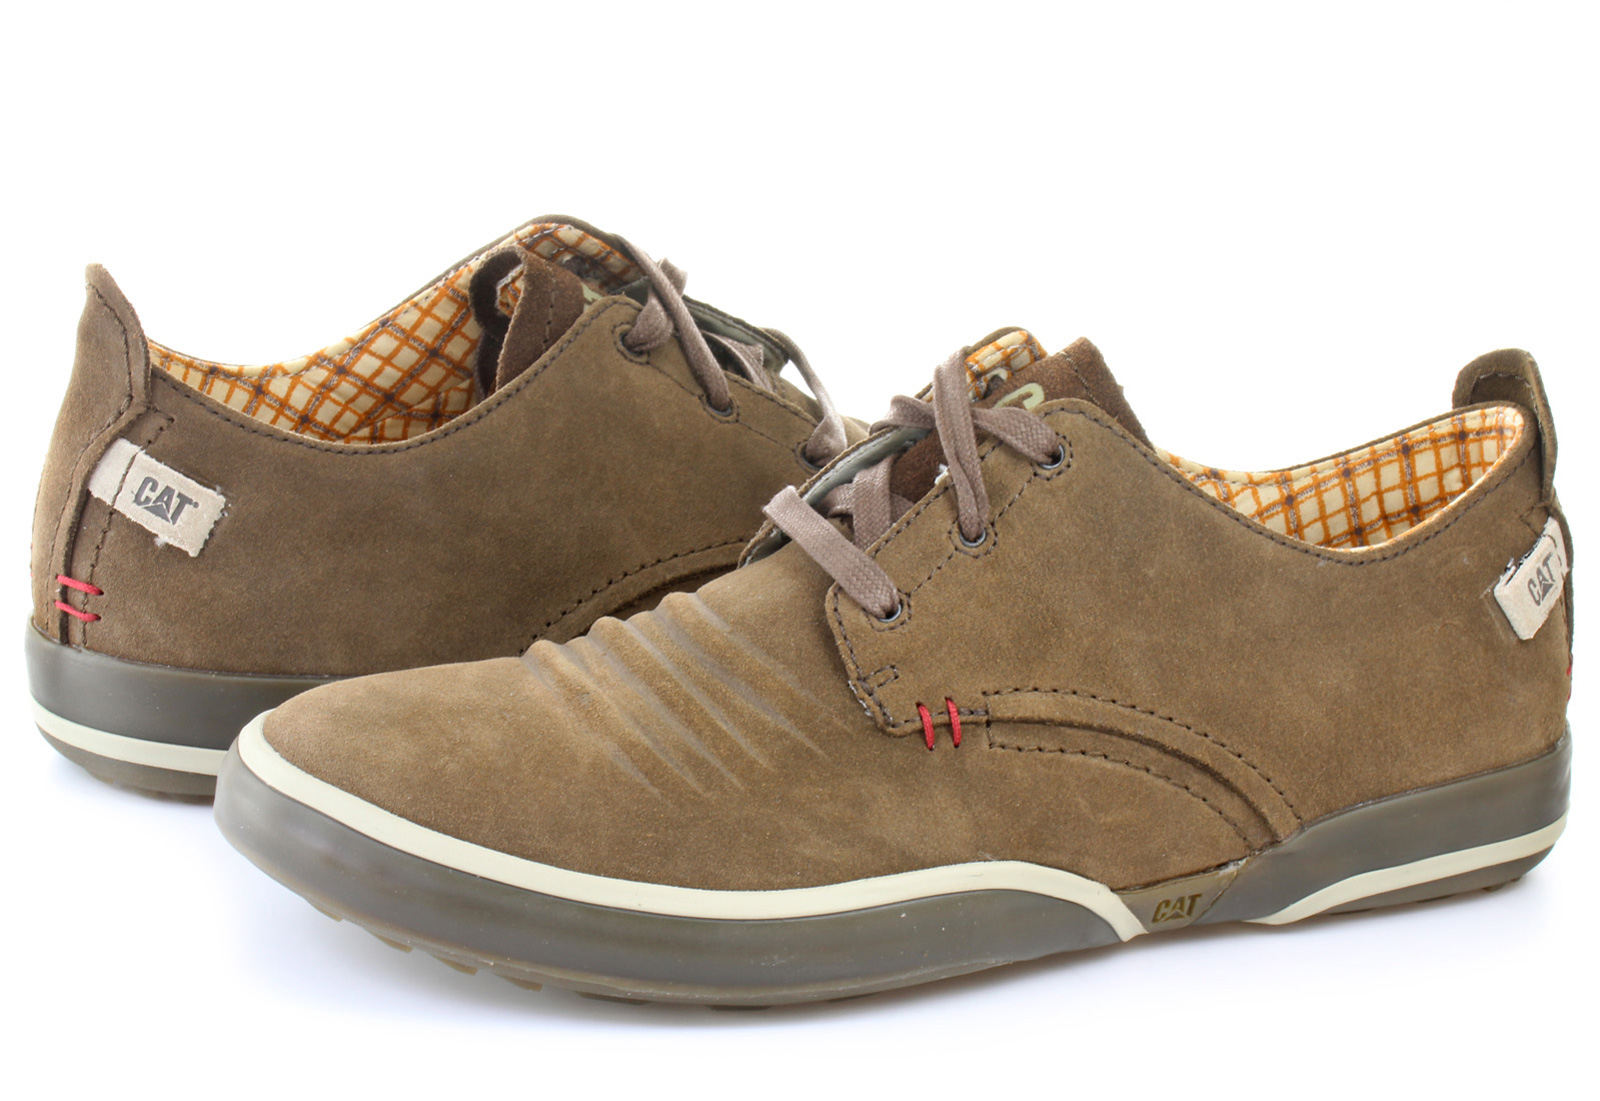 Ugg Boots For Men Cat Shoes - Status - 7...